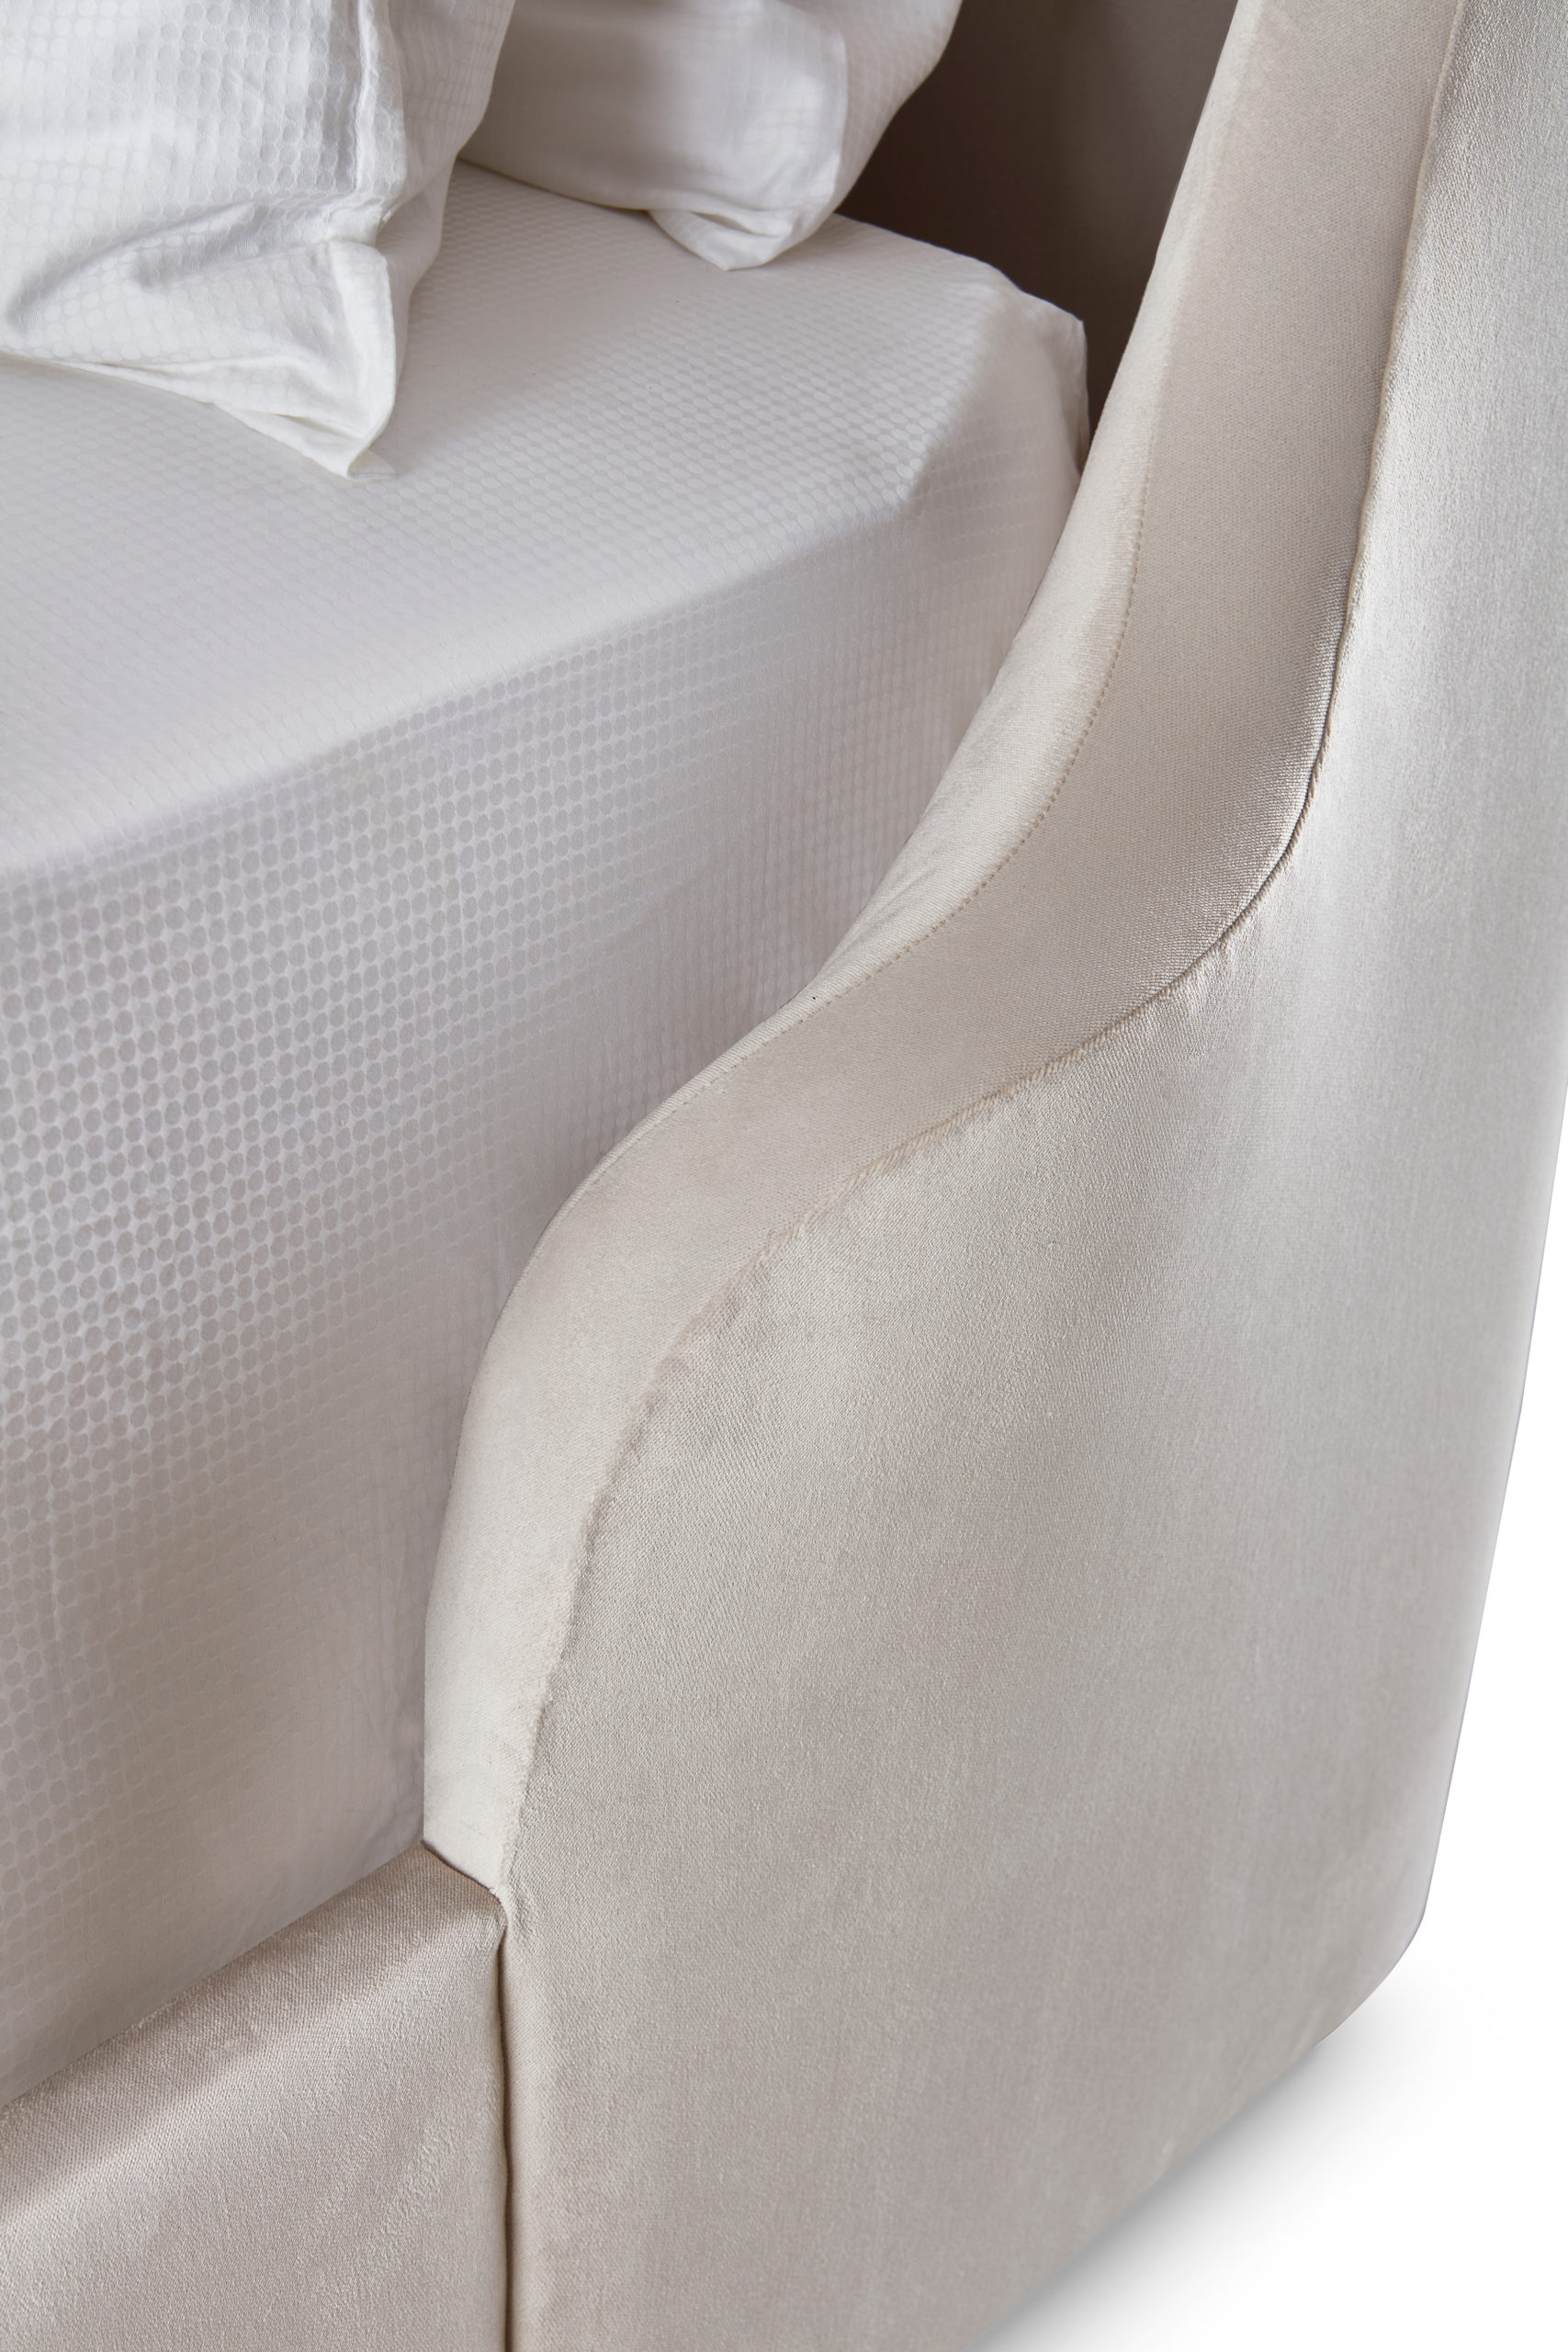 Baker_products_WNWN_casanova_bed_BAA3020_DETAIL-scaled-2